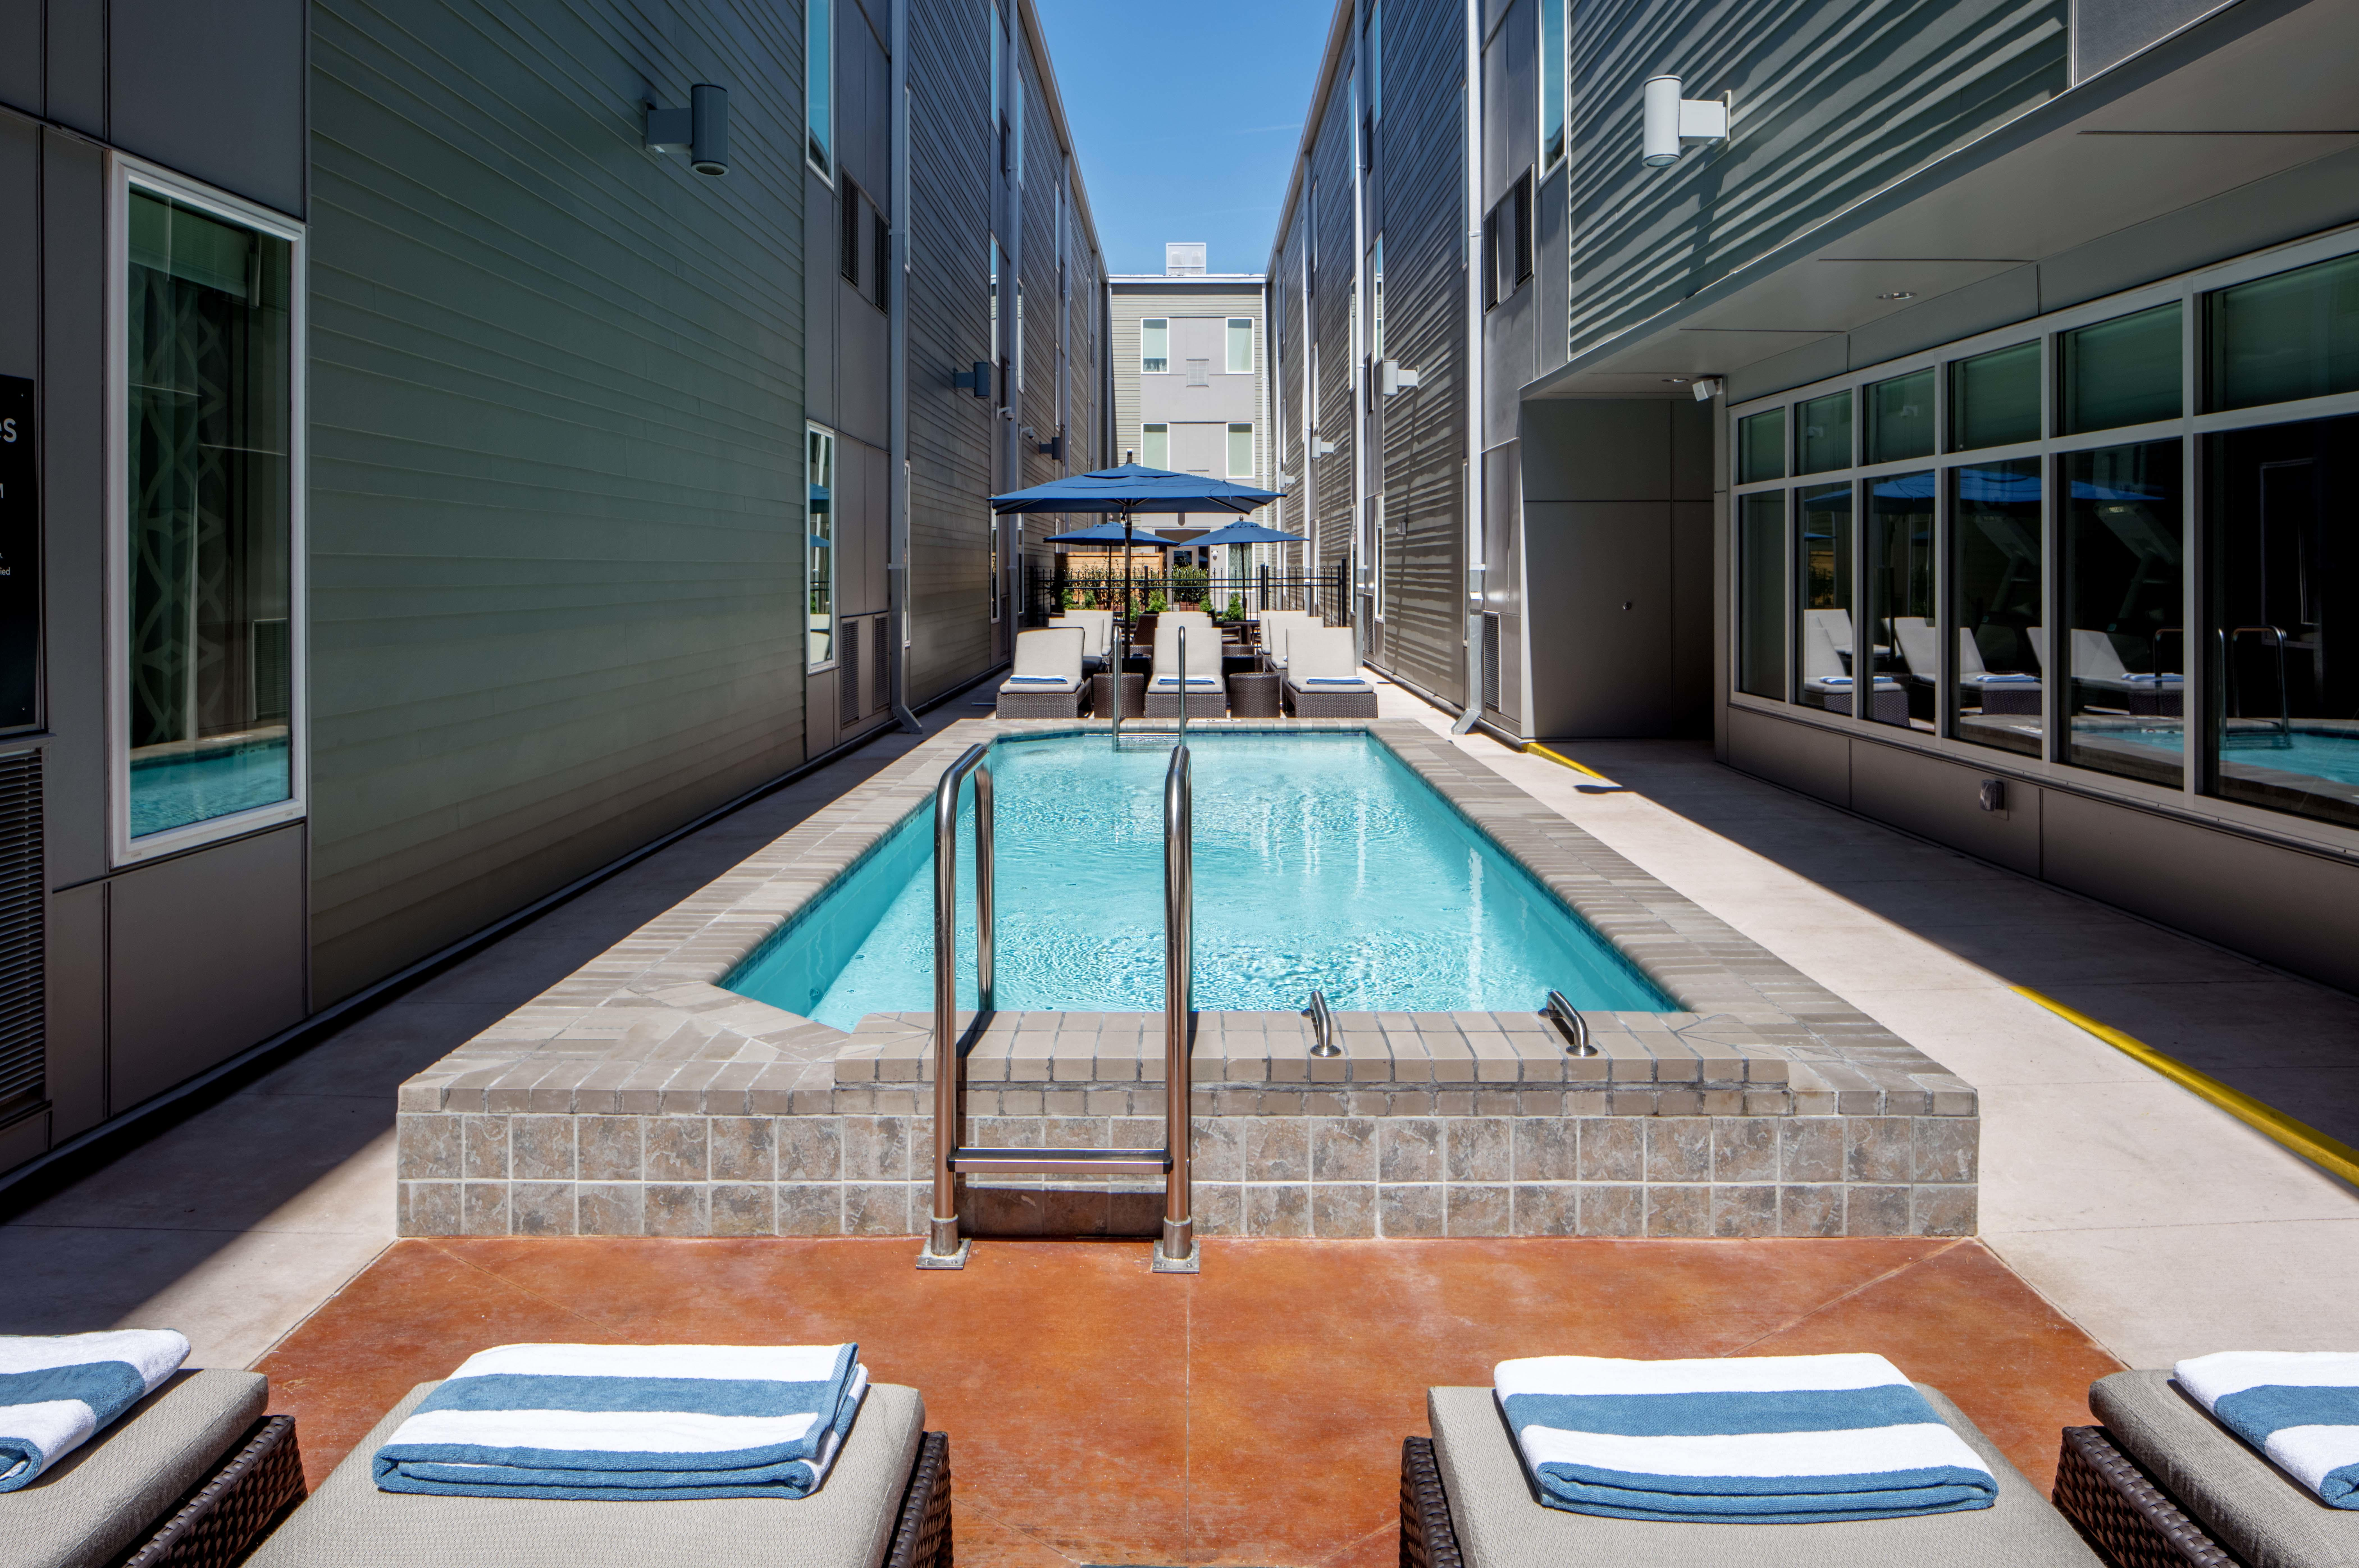 Homewood suites by hilton new orleans french quarter for Hotels near mercedes benz stadium new orleans